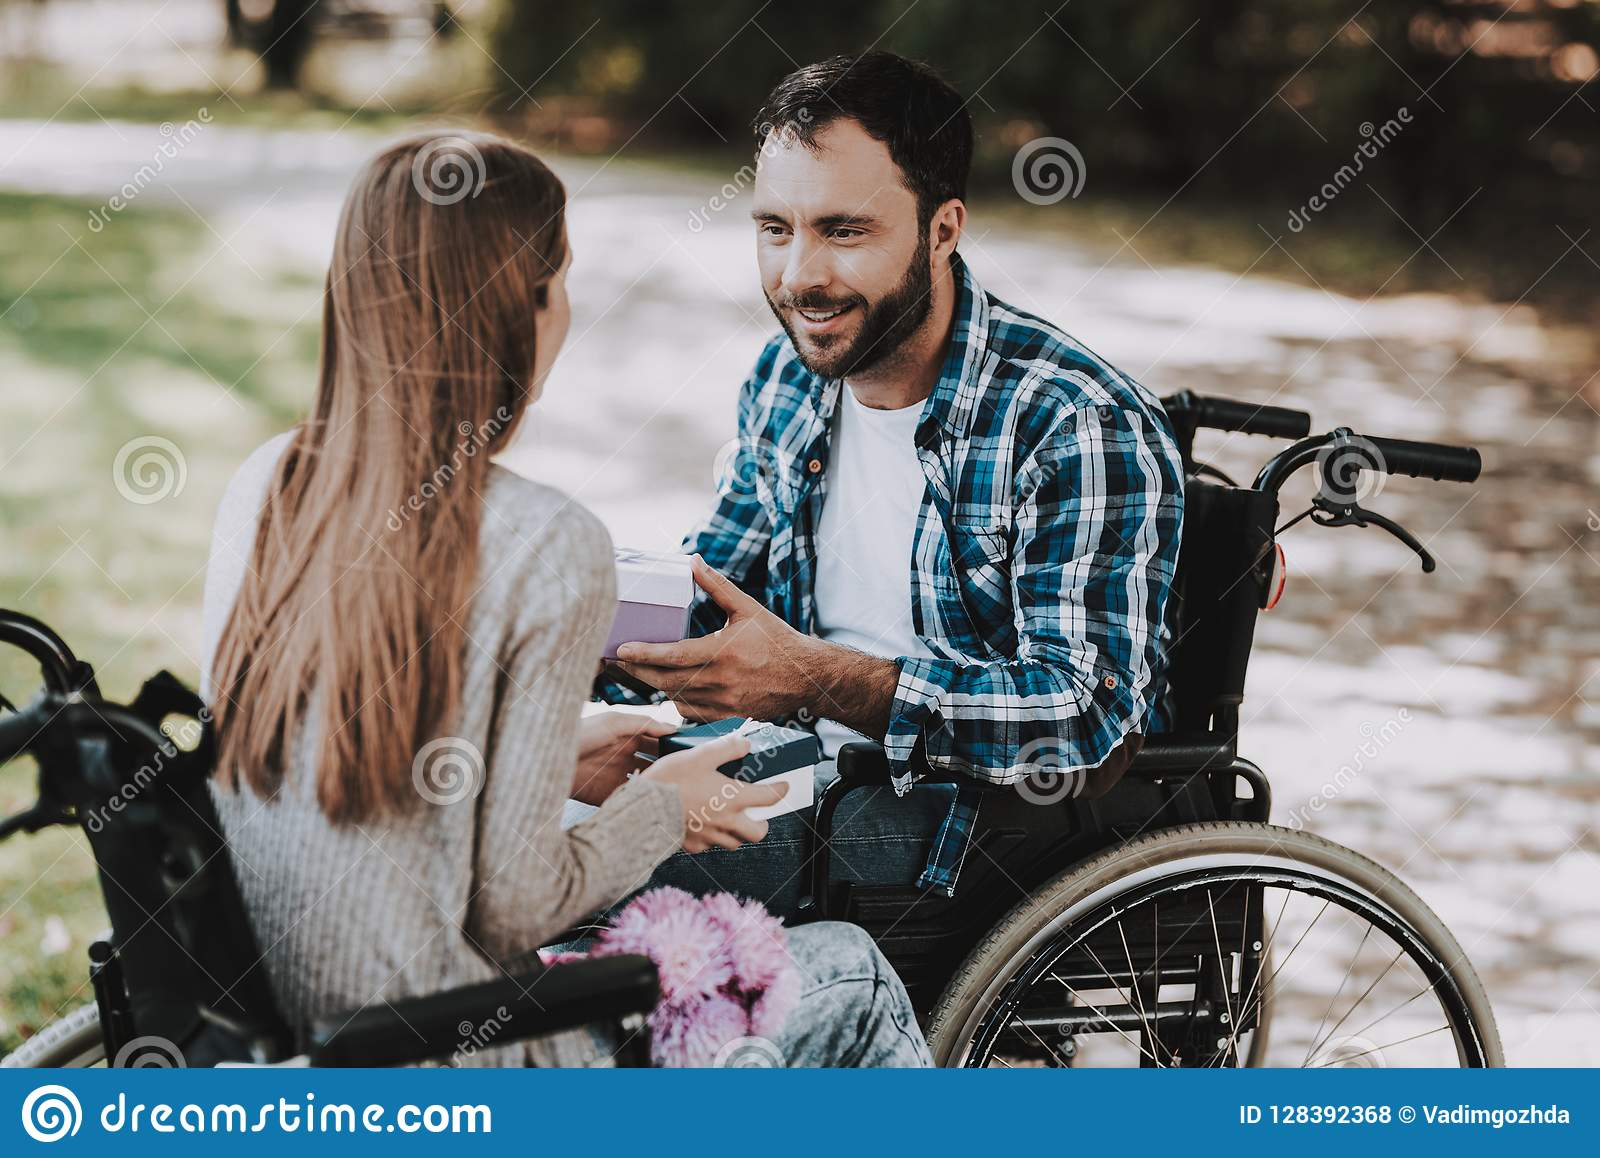 couple-disabled-people-exchanging-gifts-park-couple-disabled-people-exchanging-gifts-park-disabled-young-man-woman-128392368.jpg?profile=RESIZE_400x